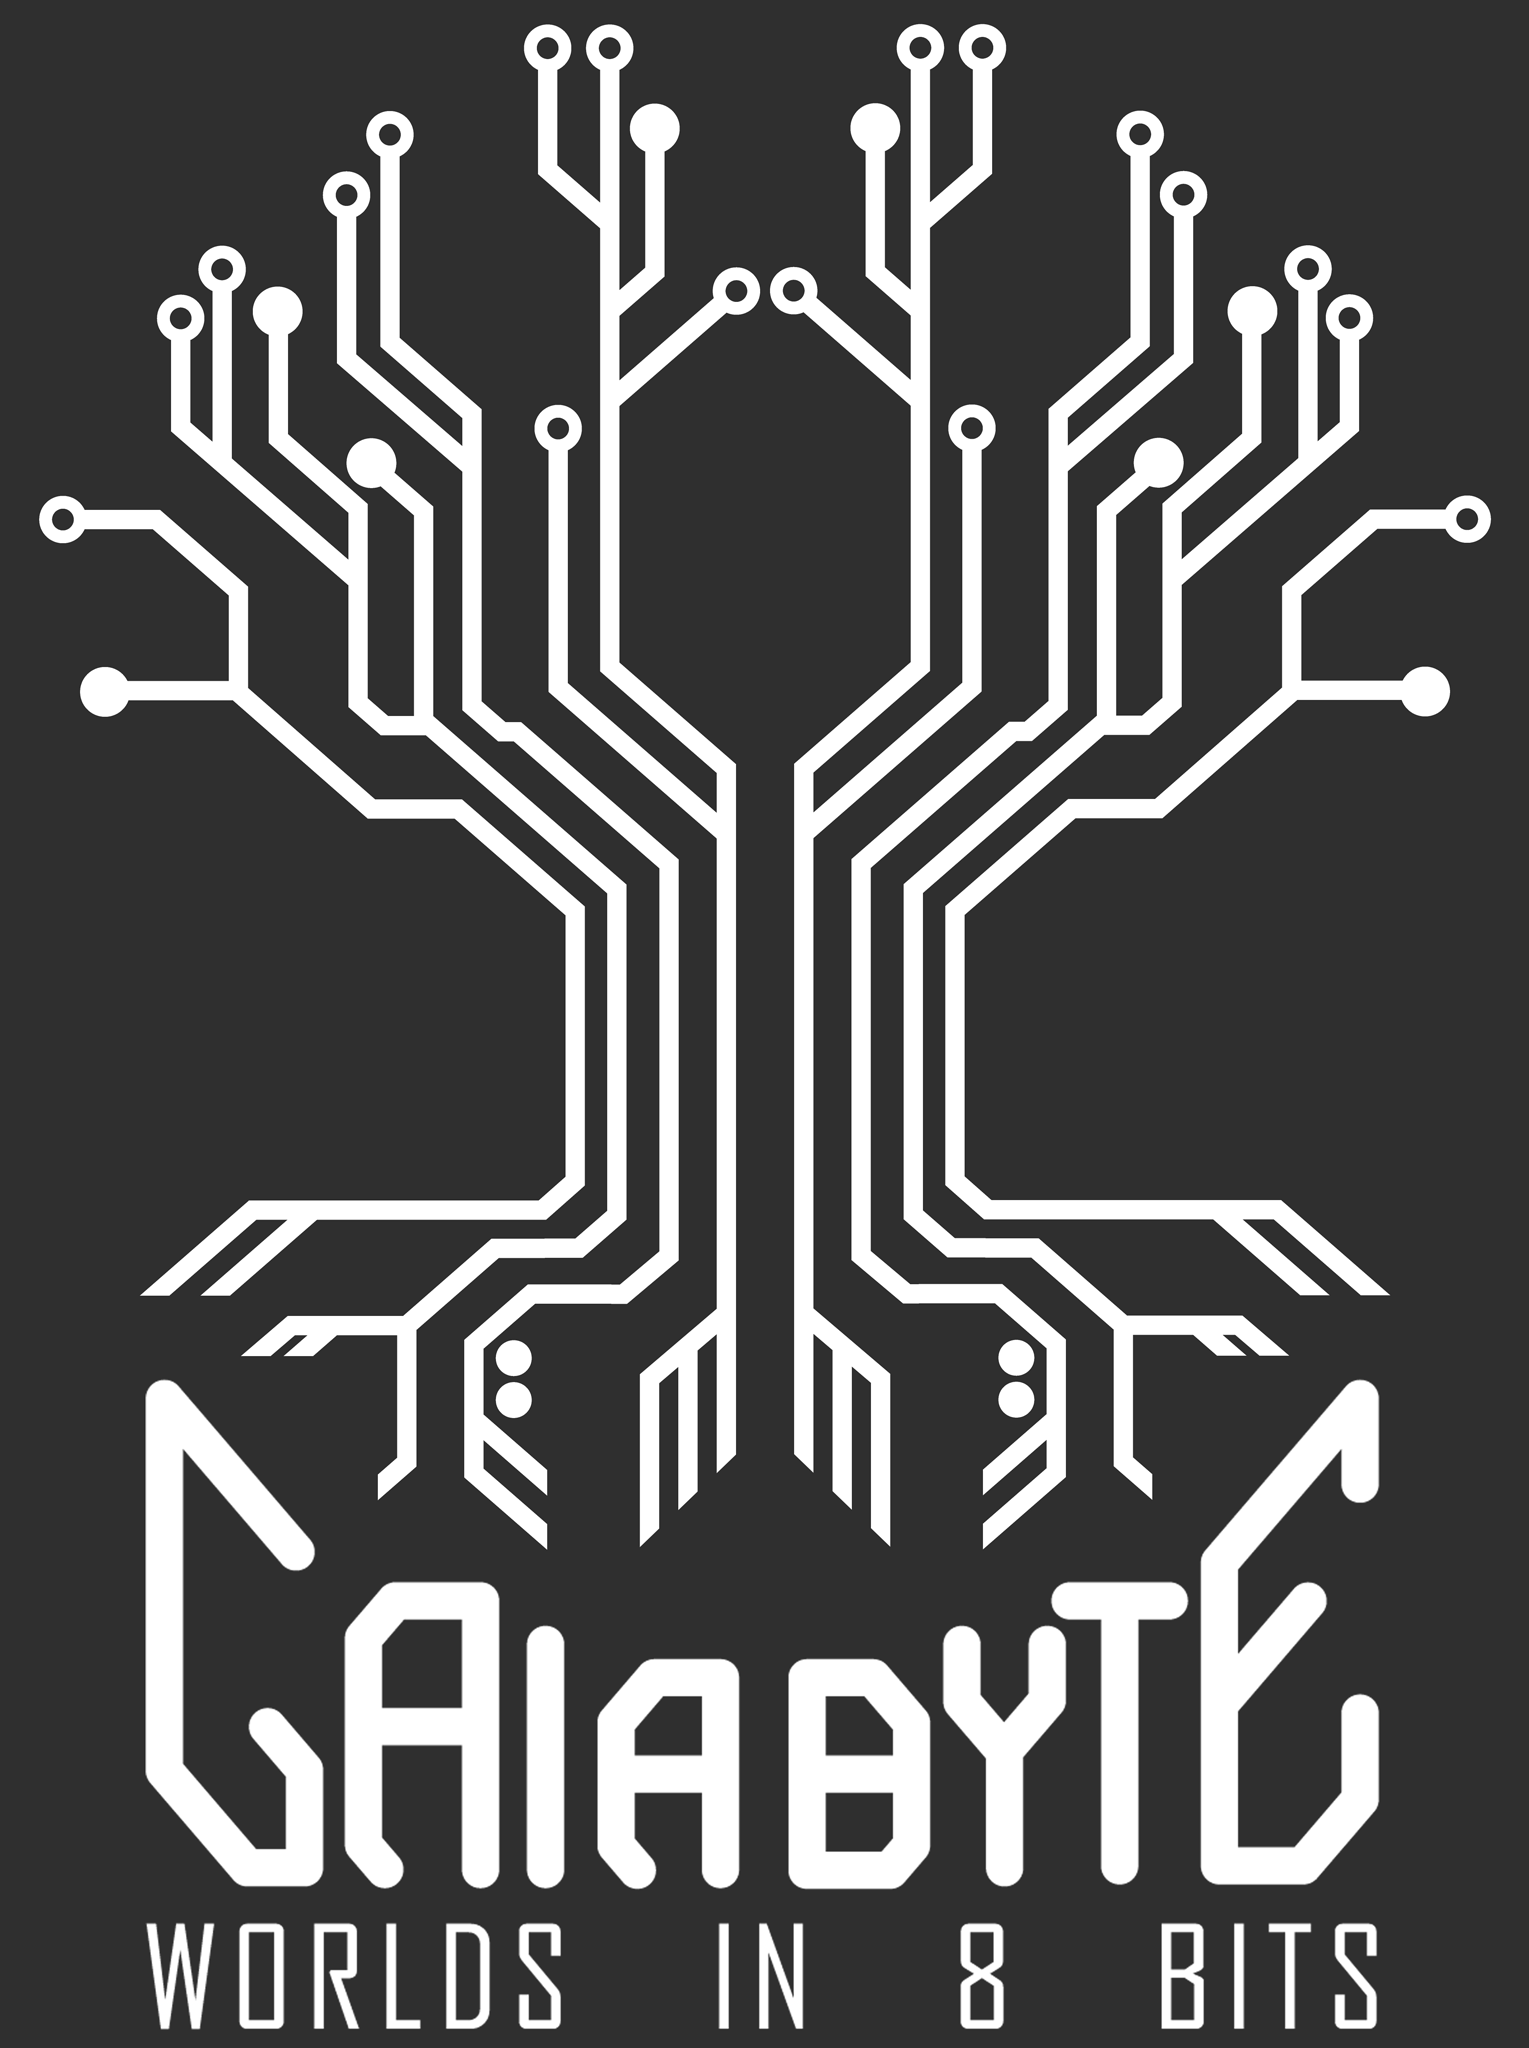 GaiaByte logo tree formed by 8 circuits